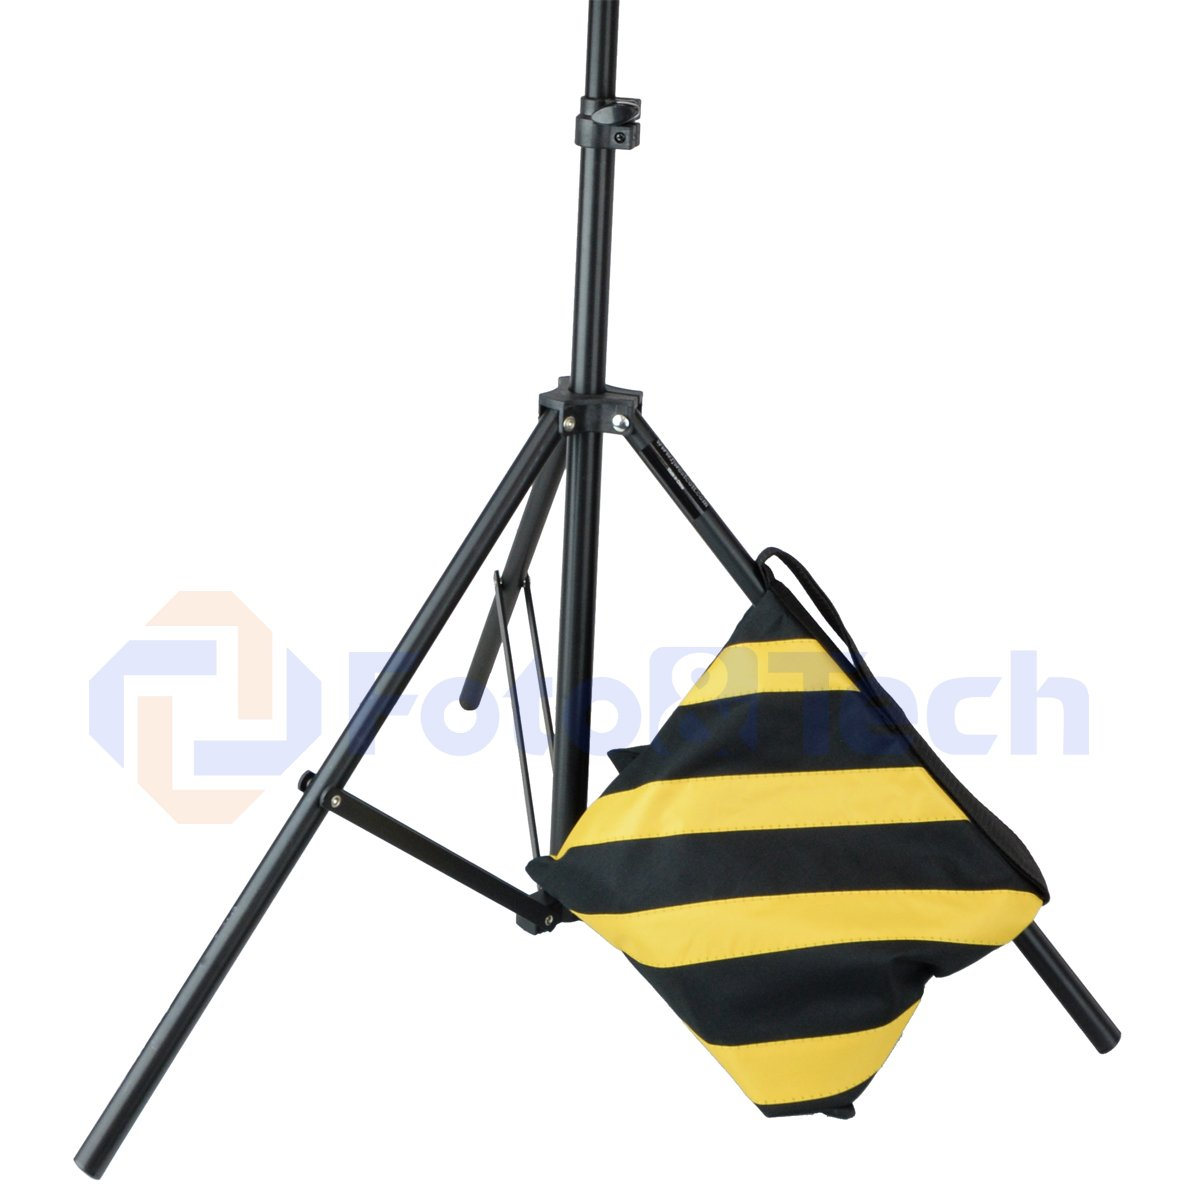 Foto&Tech 4 Pack Water Resistant 600D Oxford Heavy Duty with Internal Metal Support Sand Bag Weight Bags Saddle Bag Holds 20 LBS for Photo Video Studio Stand Tripod Indoor Outdoor (Yellow) by Foto&Tech (Image #6)